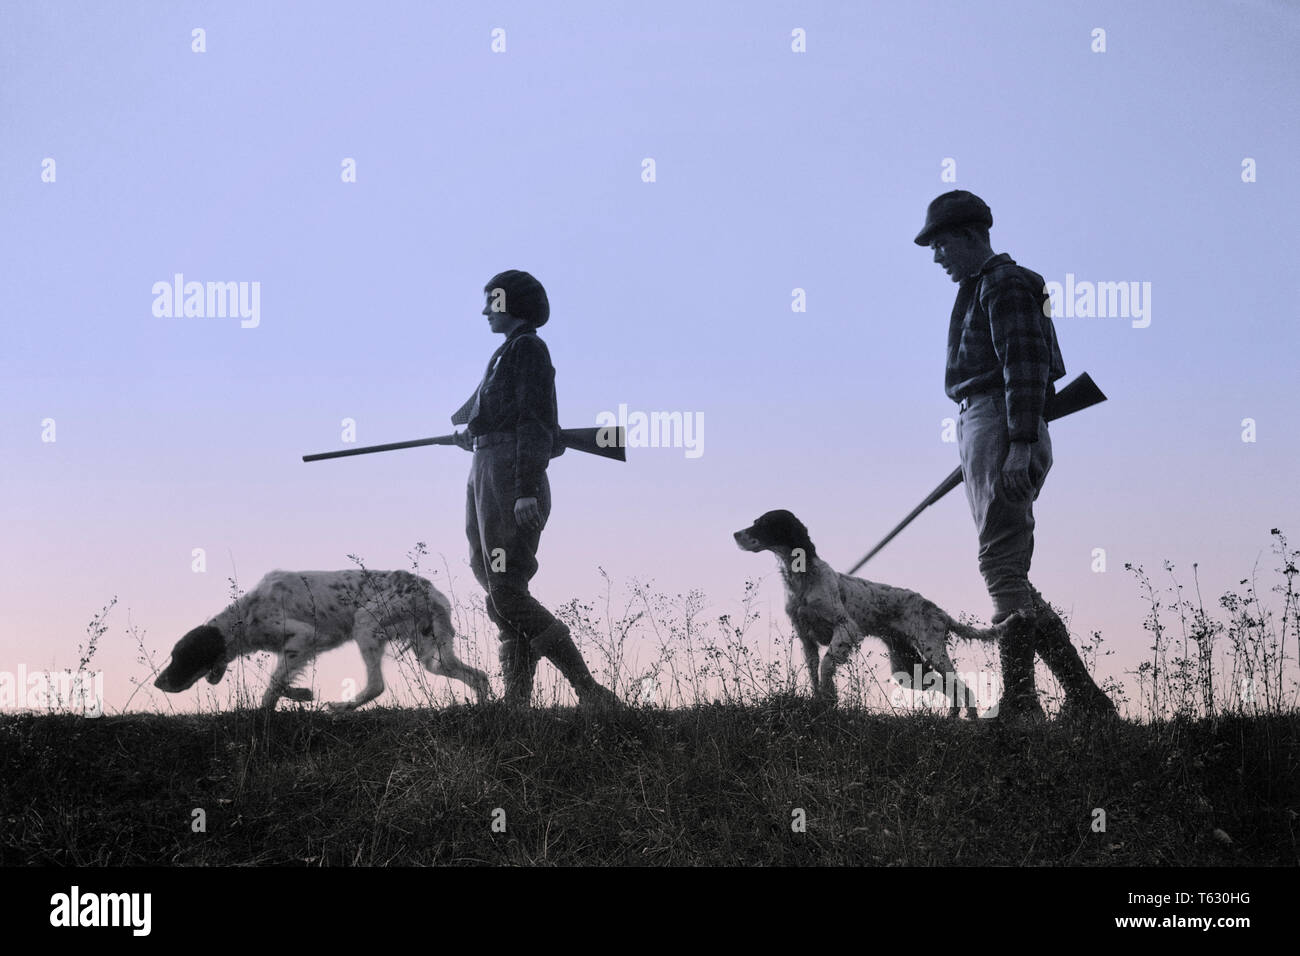 1920s 1930s ANONYMOUS SILHOUETTE MAN AND WOMAN HUNTERS CARRYING GUNS EACH WITH A HUNTING DOG  - s2541c HAR001 HARS LEISURE SILHOUETTED AND CANINES RECREATION POOCH CONNECTION ANONYMOUS CANINE COOPERATION FIREARM FIREARMS HUNTERS MAMMAL MID-ADULT MID-ADULT MAN MID-ADULT WOMAN TOGETHERNESS BLACK AND WHITE HAR001 OLD FASHIONED - Stock Image